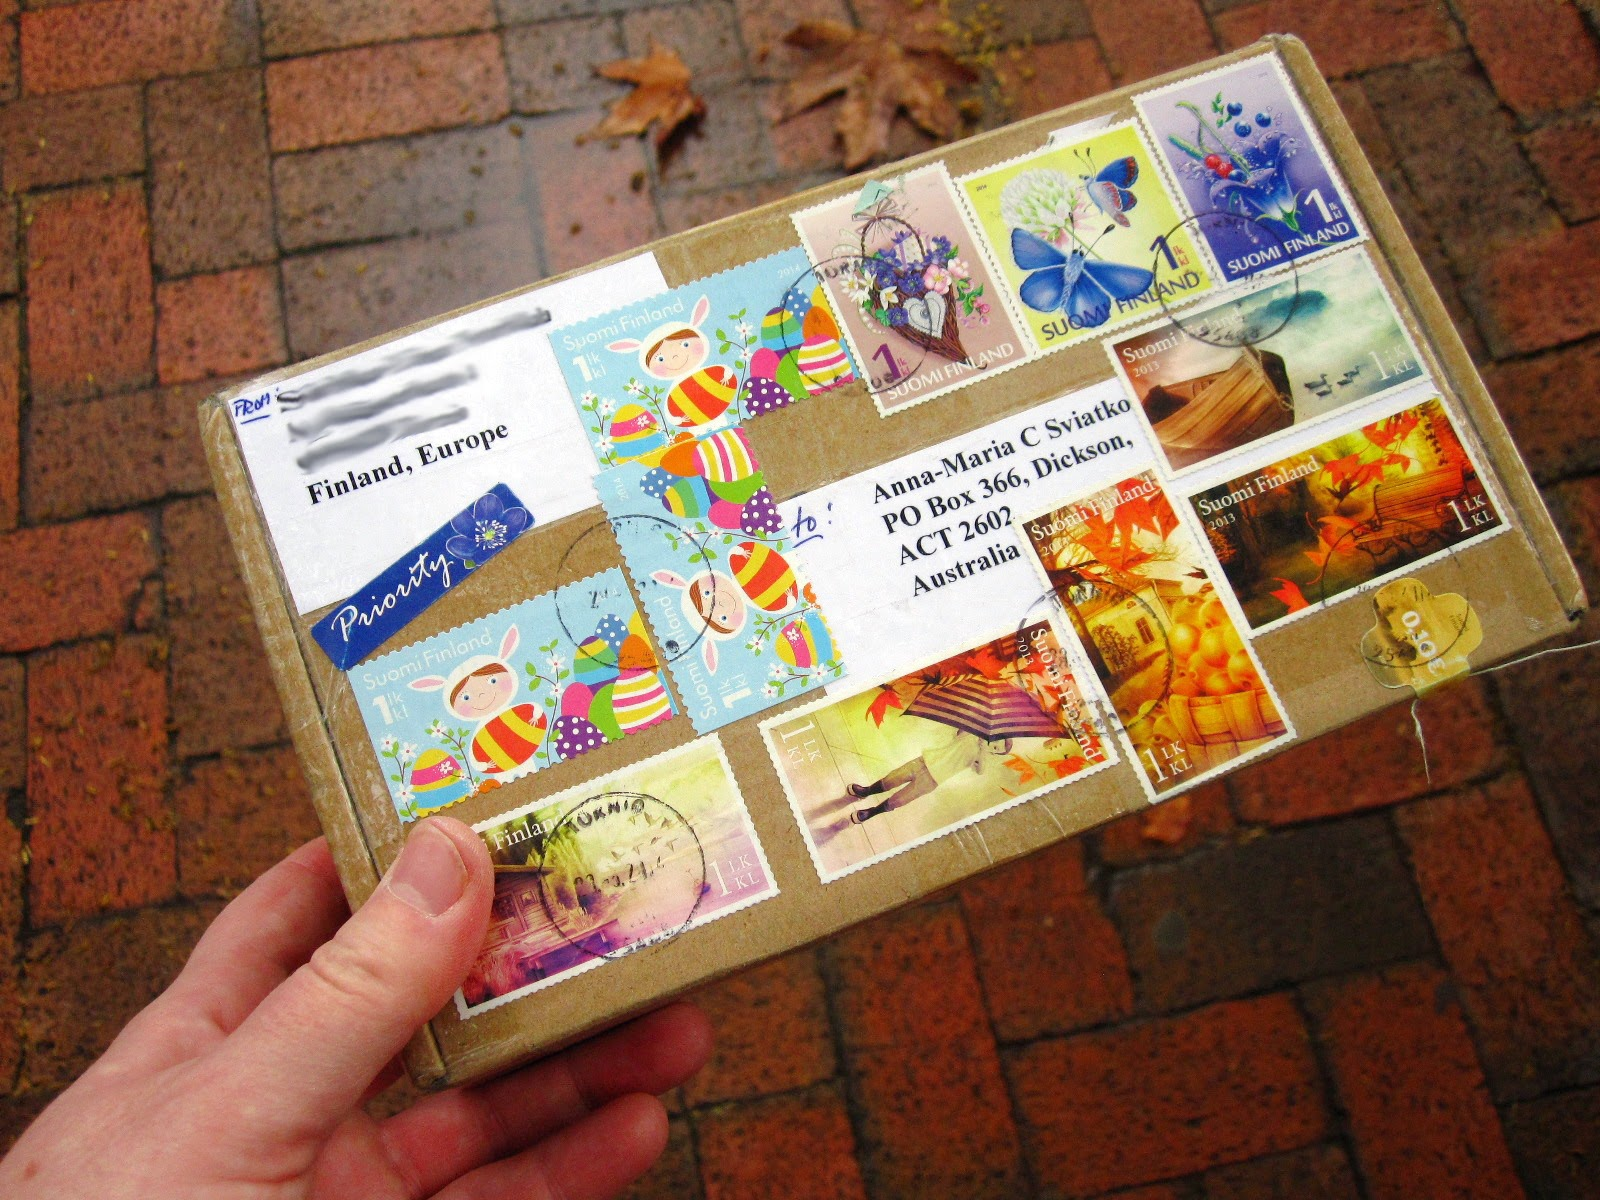 Small package from Finland, covered in colourful postage stamps